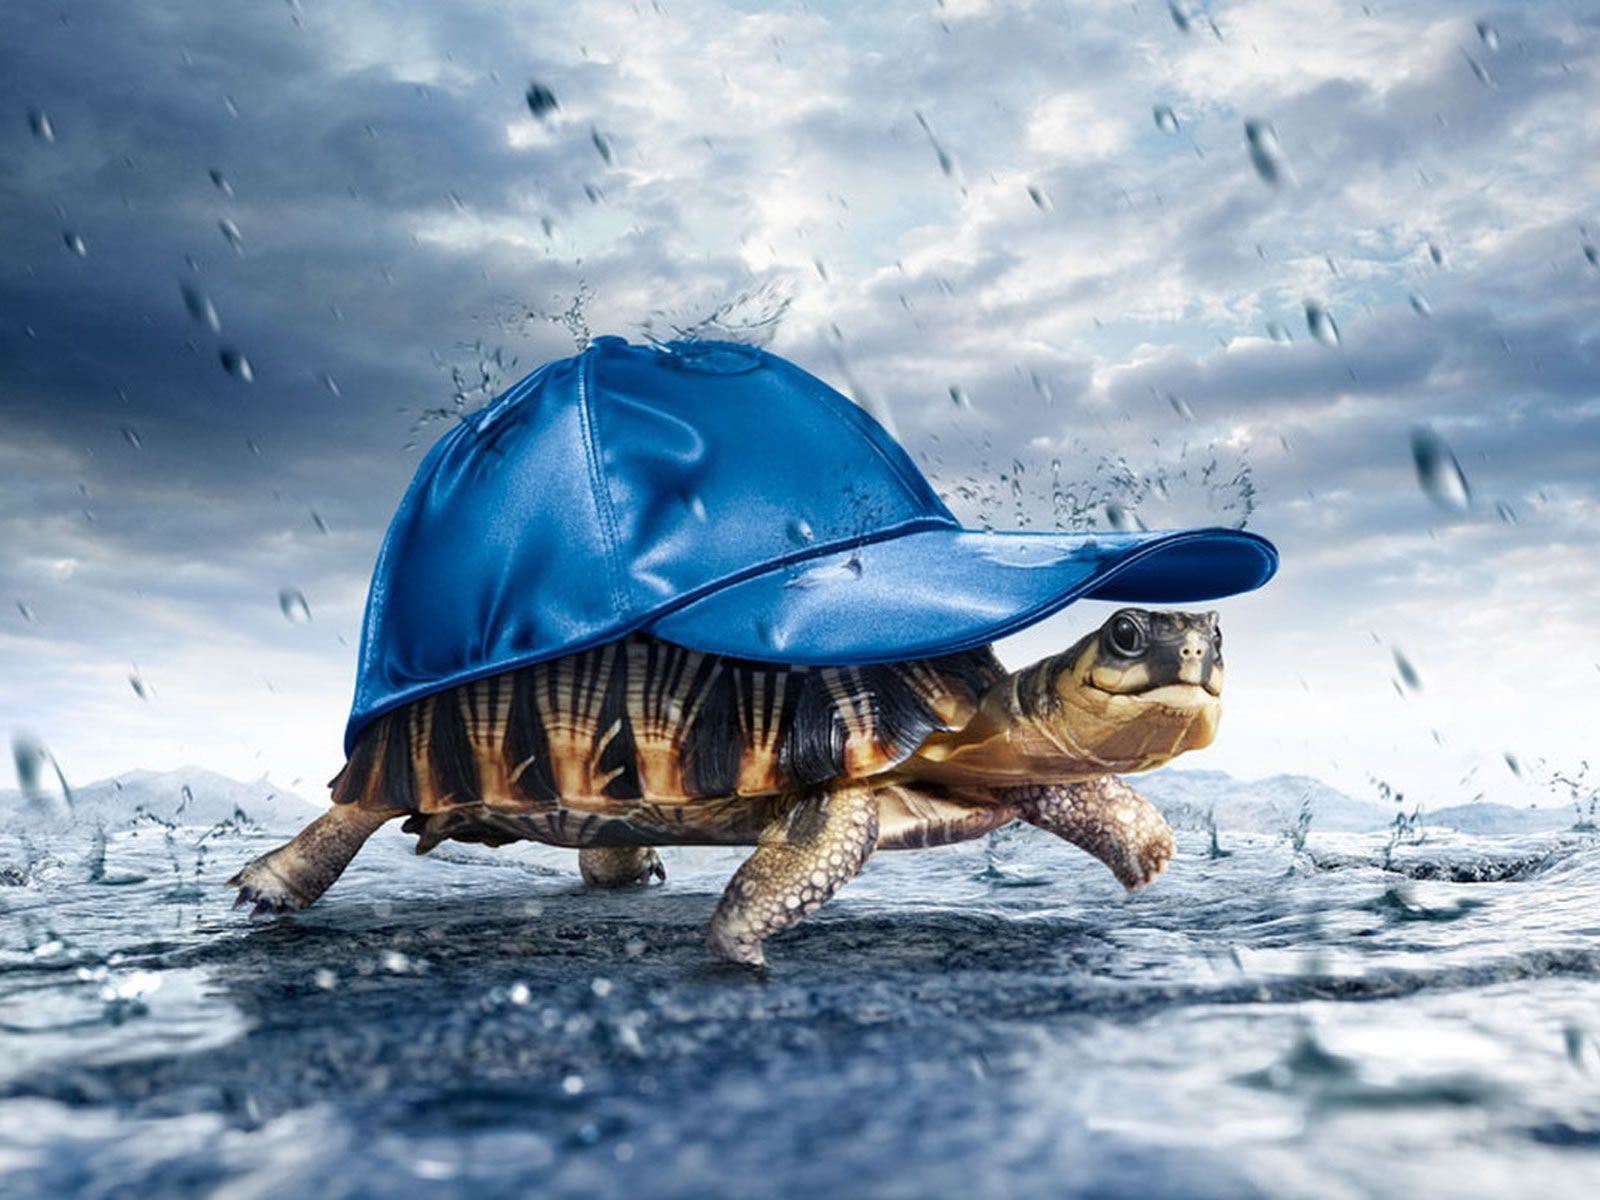 Funny 3d Animal Turtle Wallpapers Hd: Rain Wallpapers, Happy Turtle